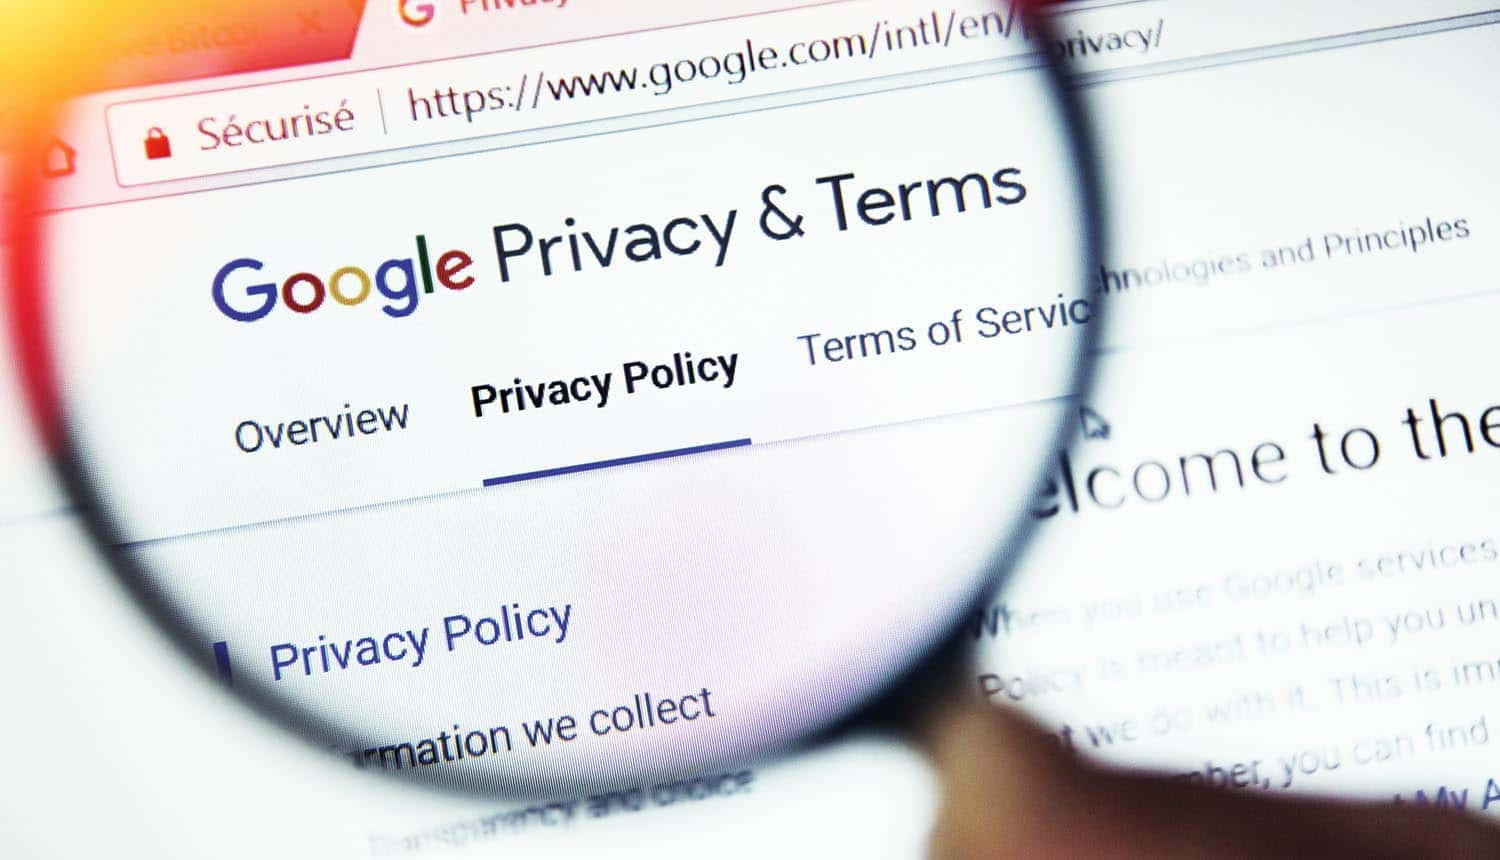 Privacy terms on Google website magnified with magnifying glass showing the cause of GDPR fines